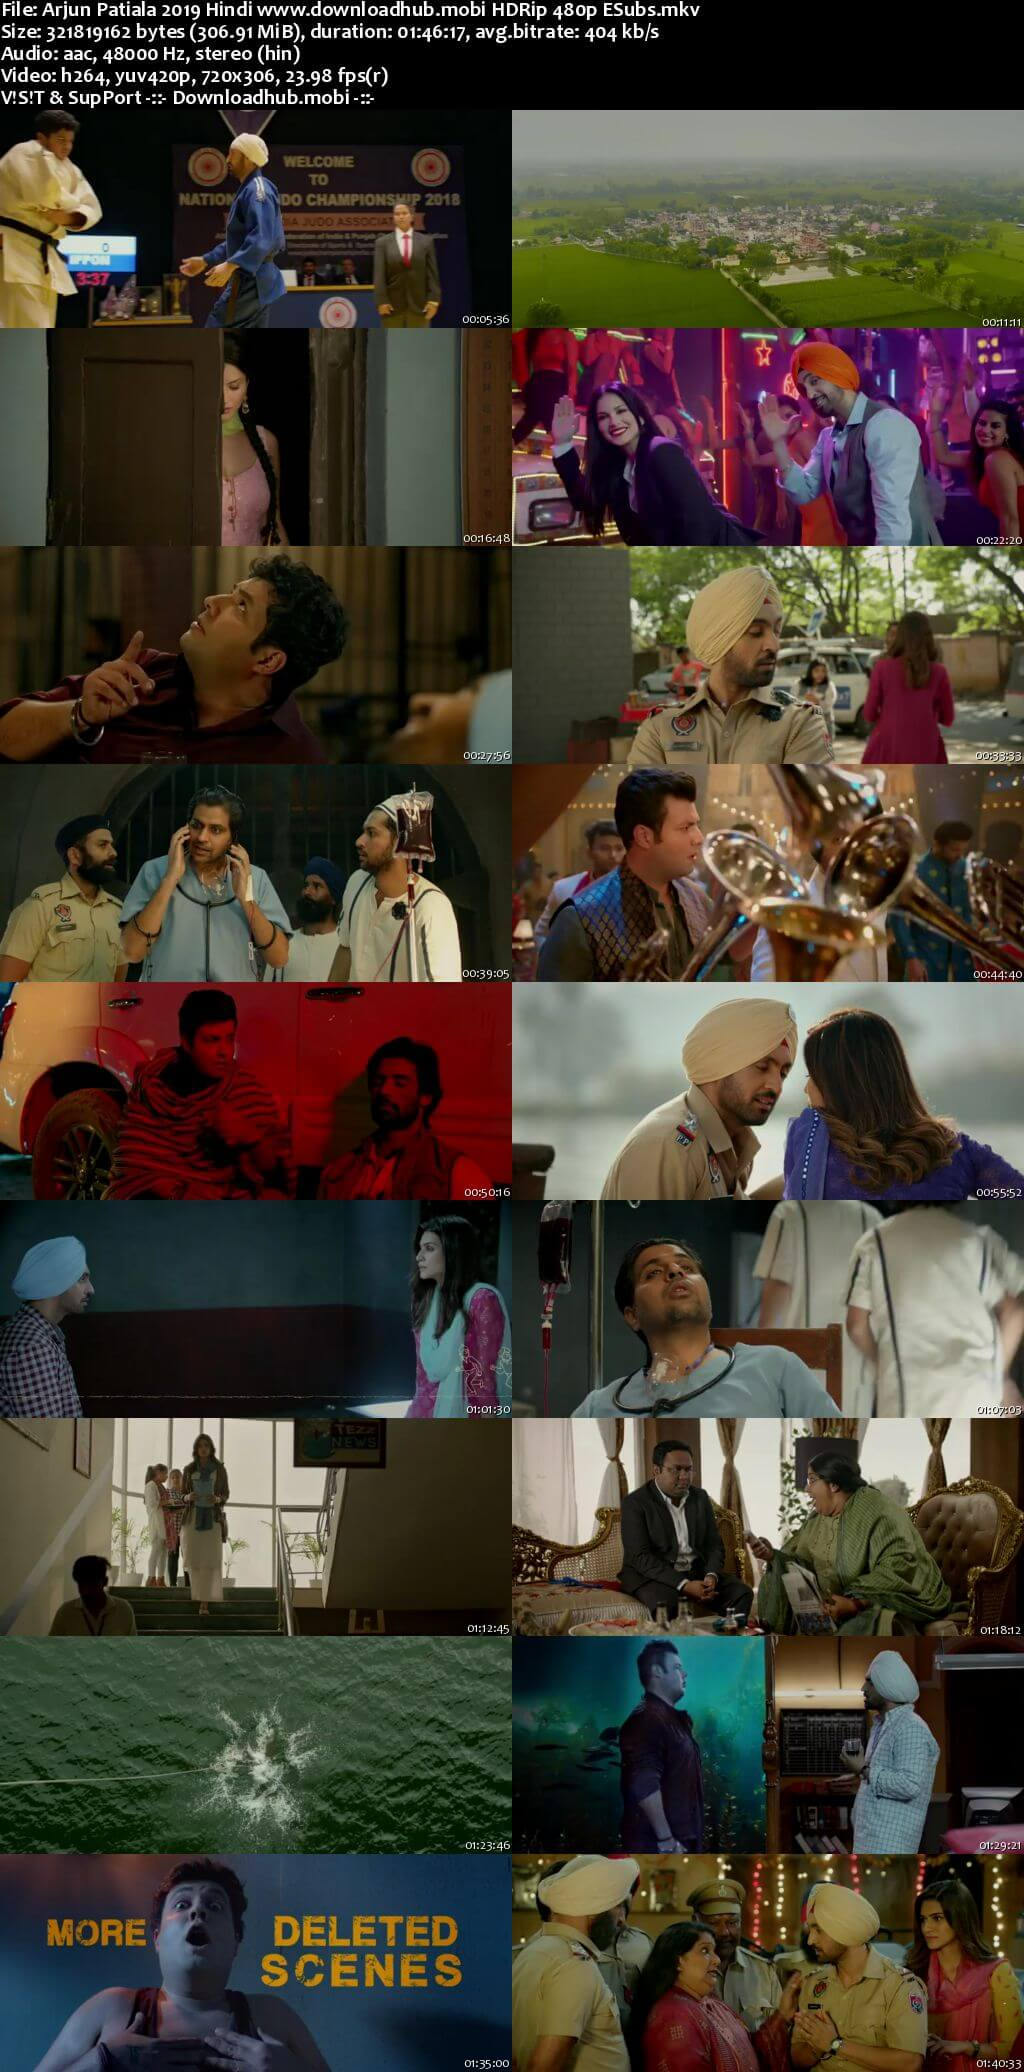 Arjun Patiala 2019 Hindi 300MB HDRip 480p ESubs